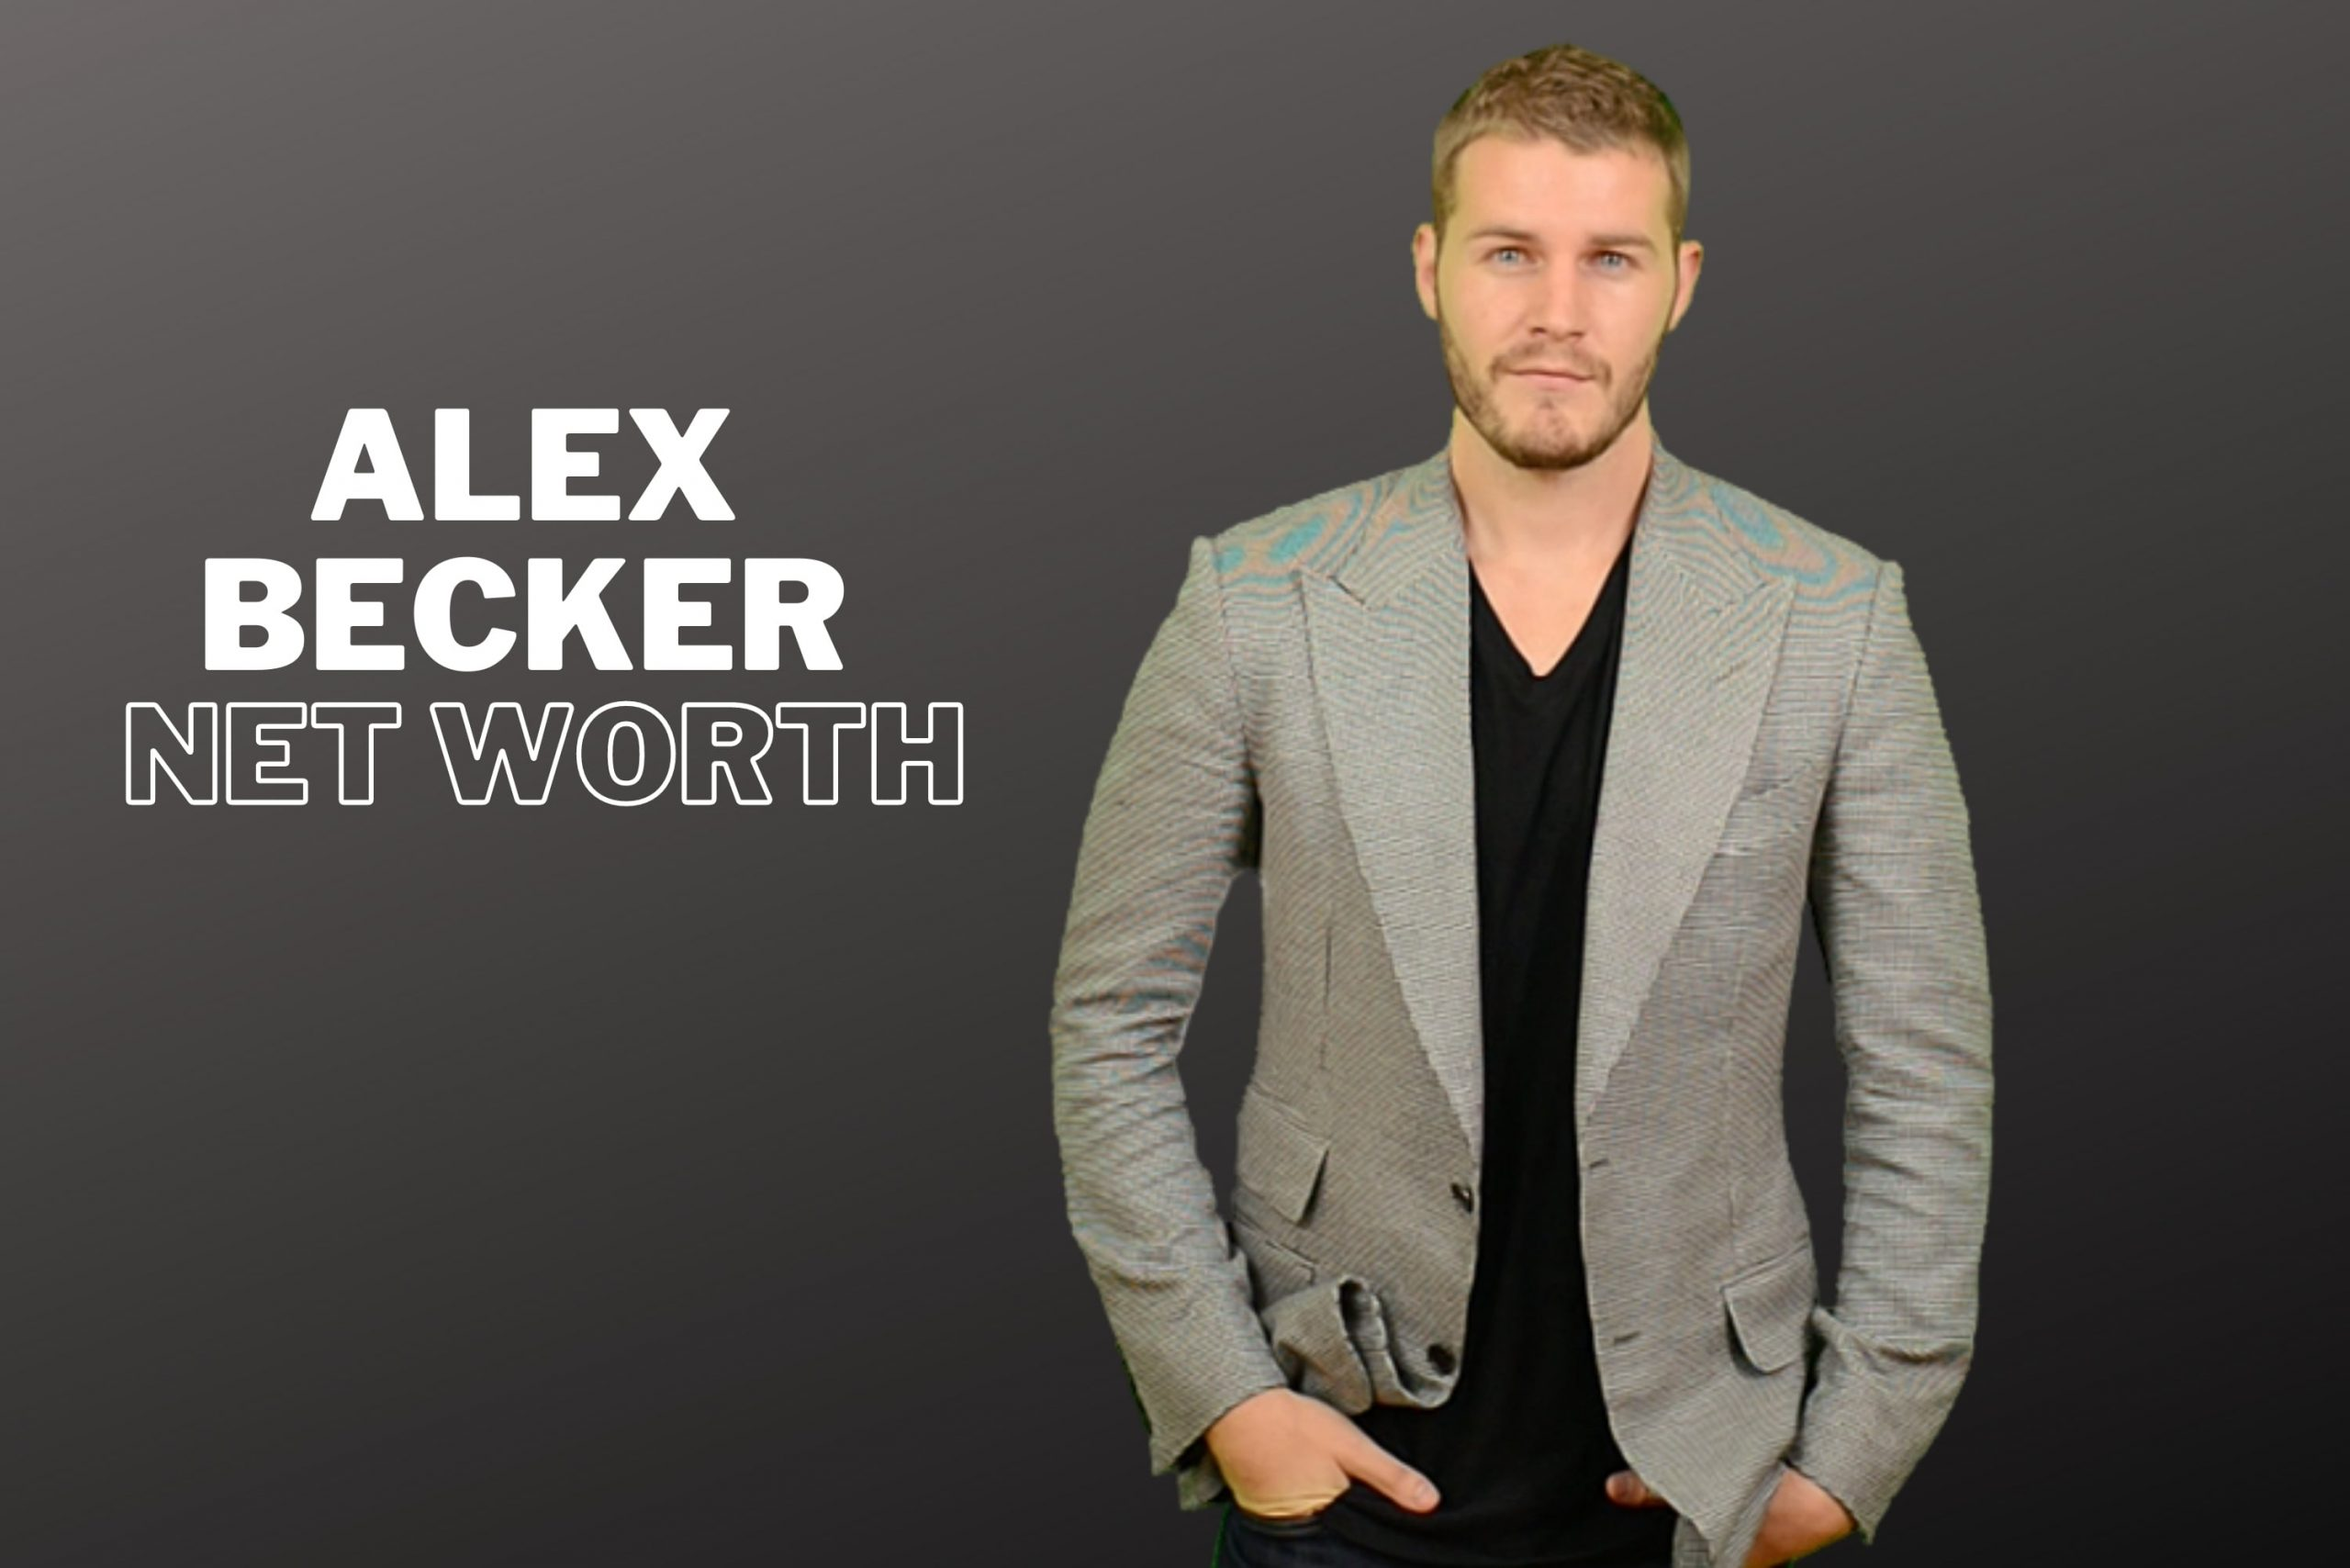 Alex Becker Net Worth 2021, Early Life, Career, Relationship, and Awards